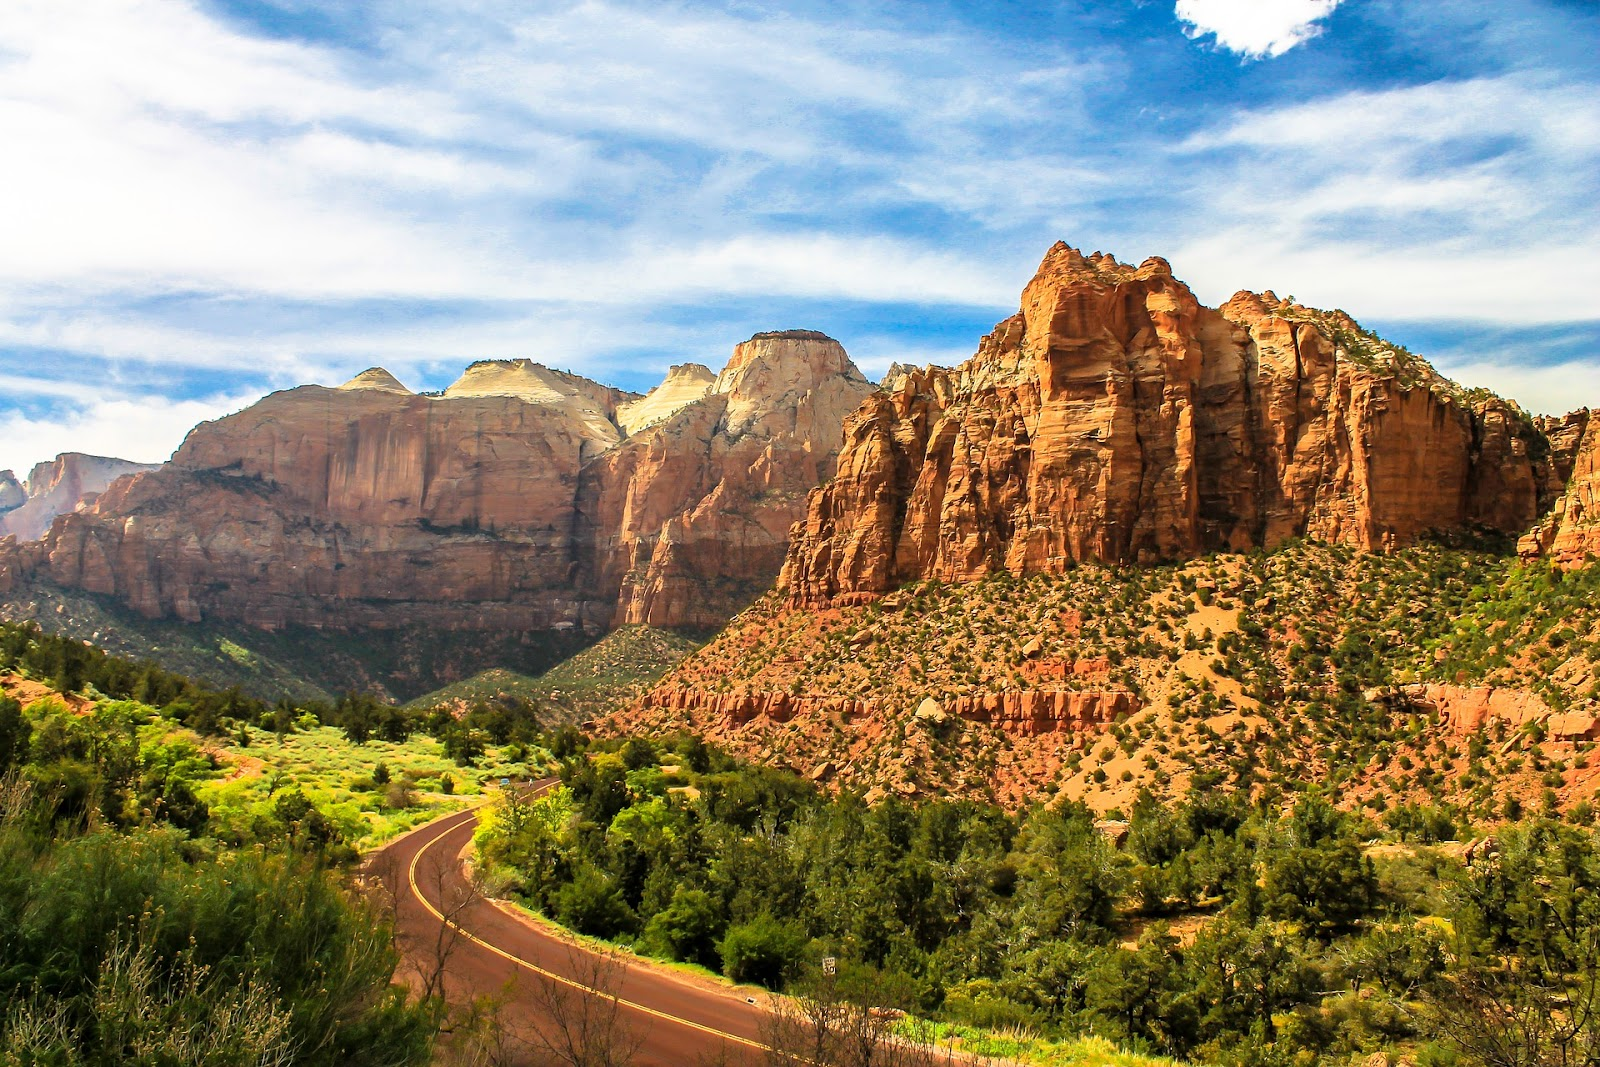 zion-scenic-drive-road-national-park-canyon-red-rock-utah